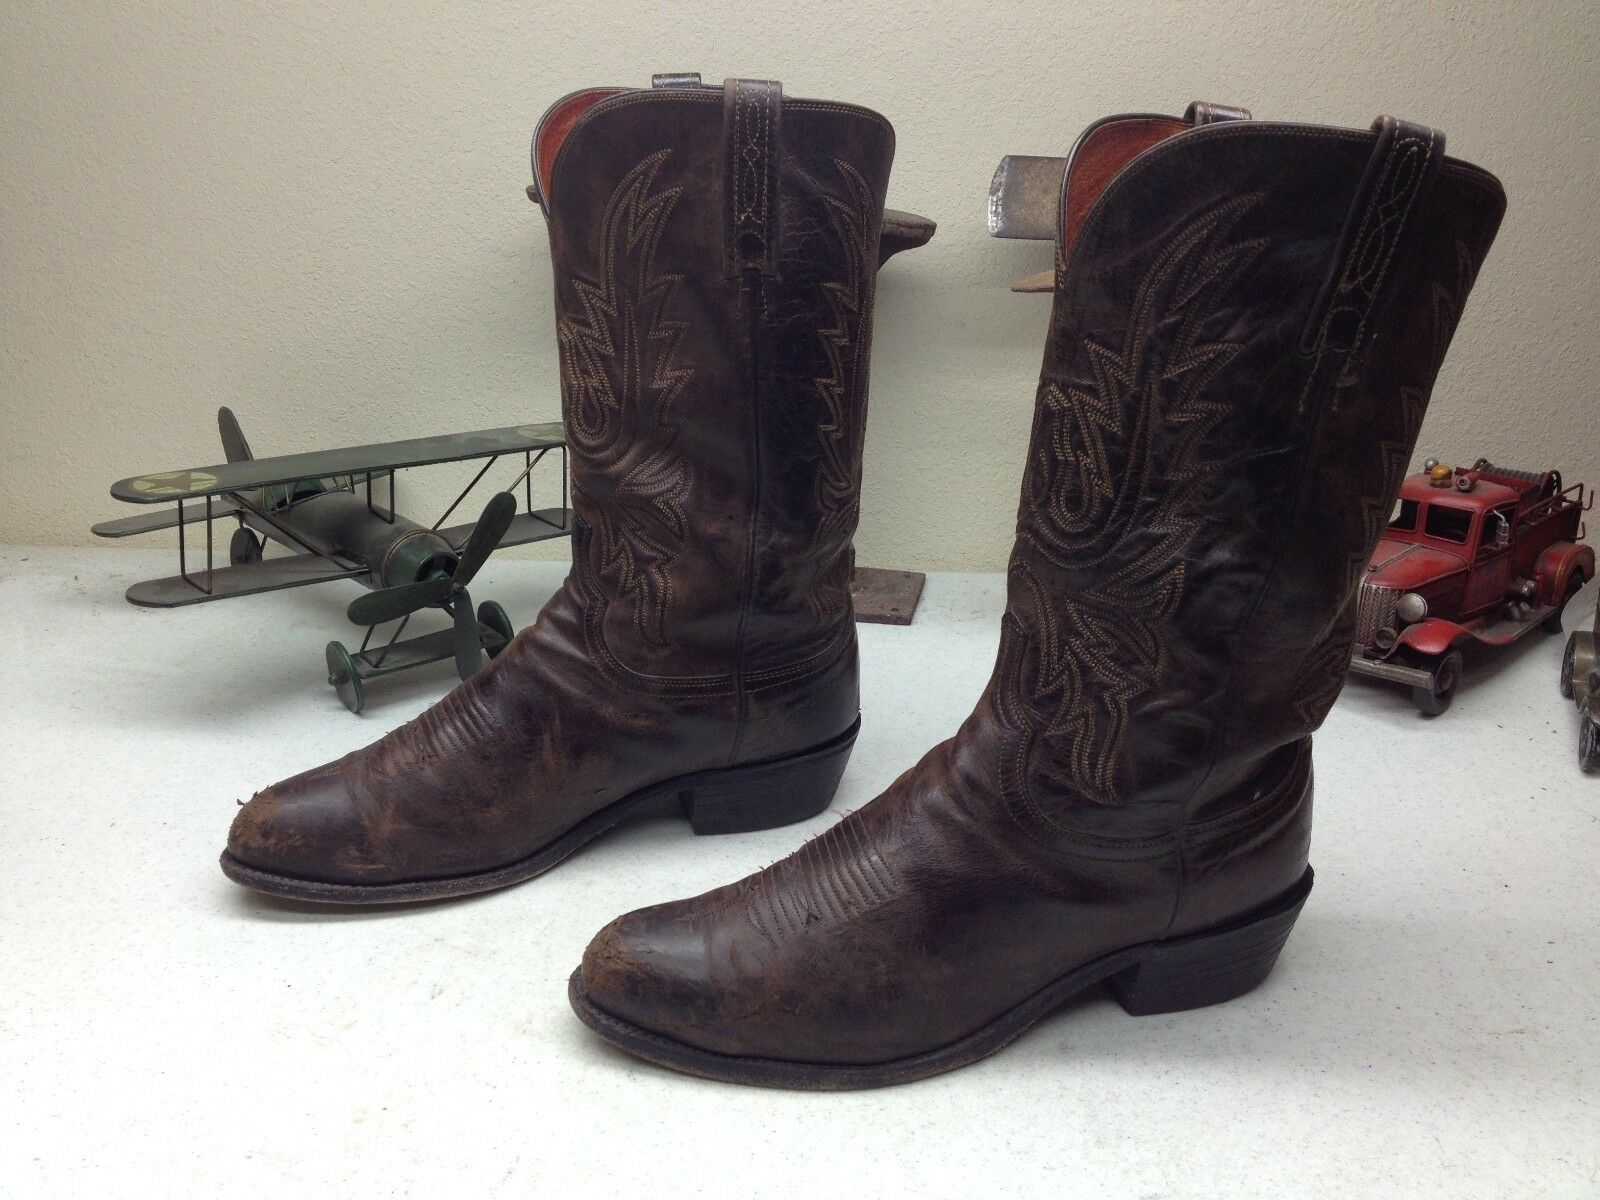 DISTRESSED LUCCHESE BROWN LEATHER ENGINEER MOTORCYCLE BOOT 11EE